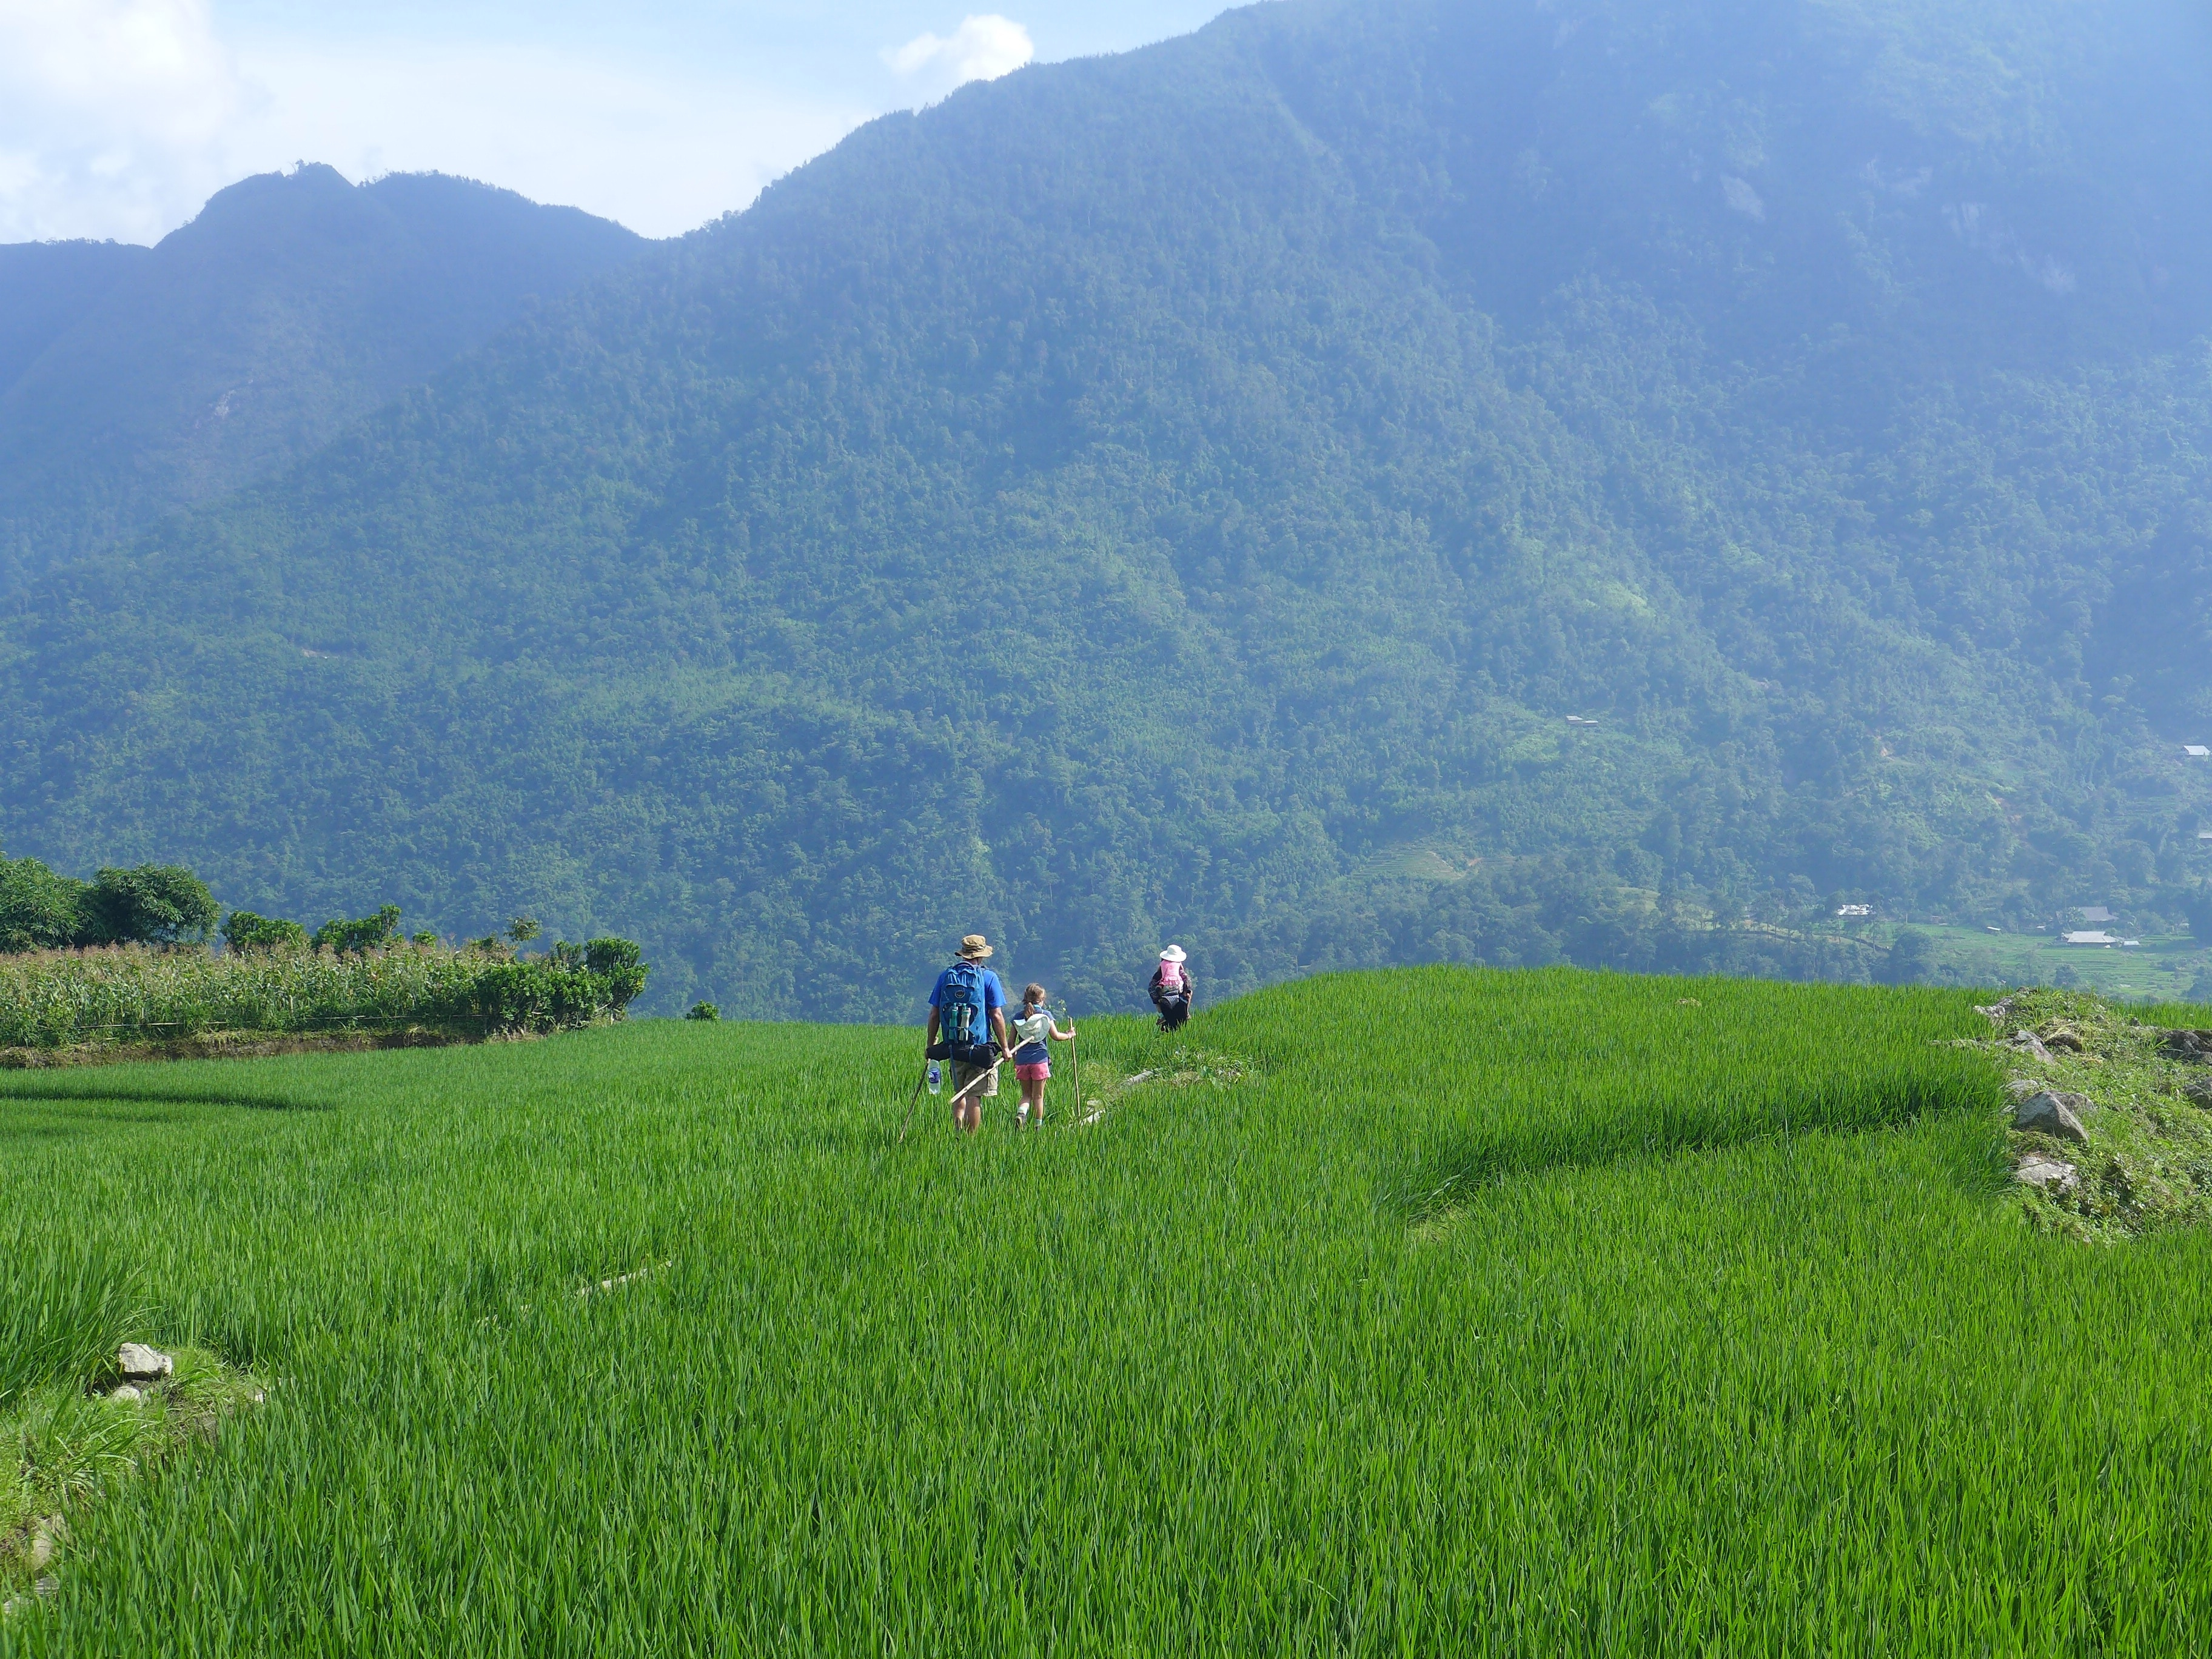 Jacob and Mackenzie follow Chi through high green rice field with Mountains in background